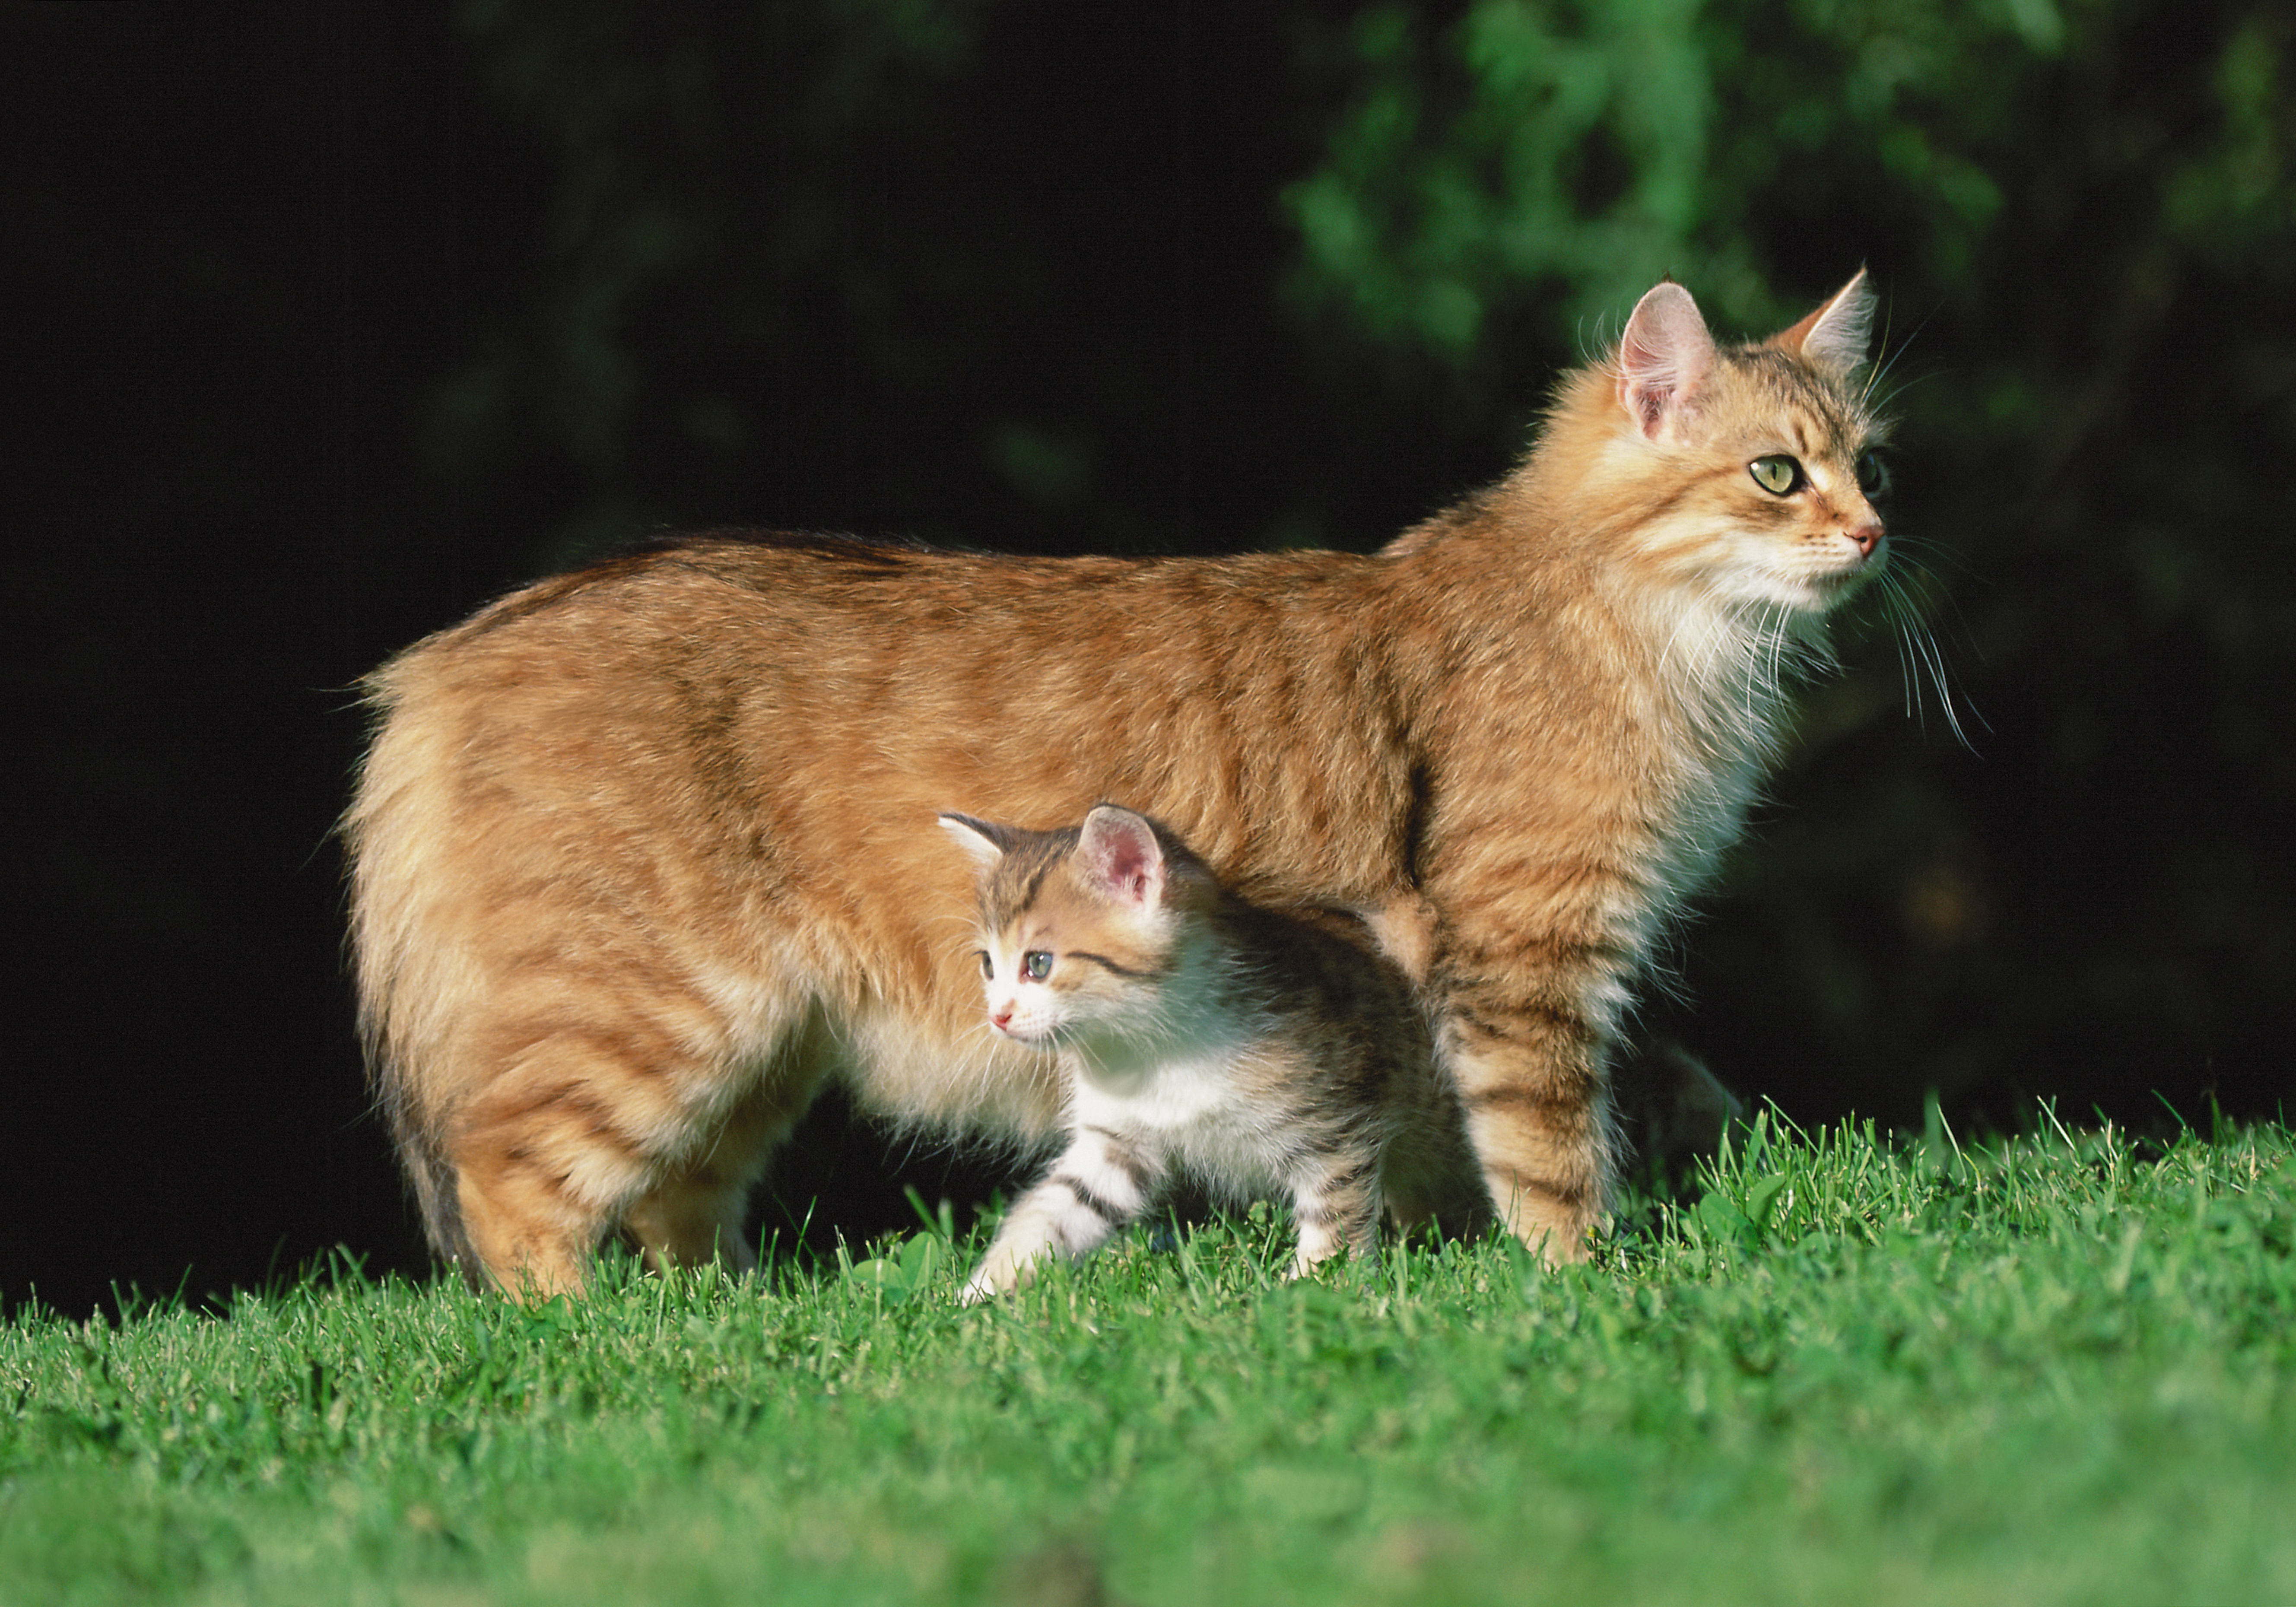 56407 Screensavers and Wallpapers Kitten for phone. Download Animals, Grass, Cat, Kitty, Kitten pictures for free